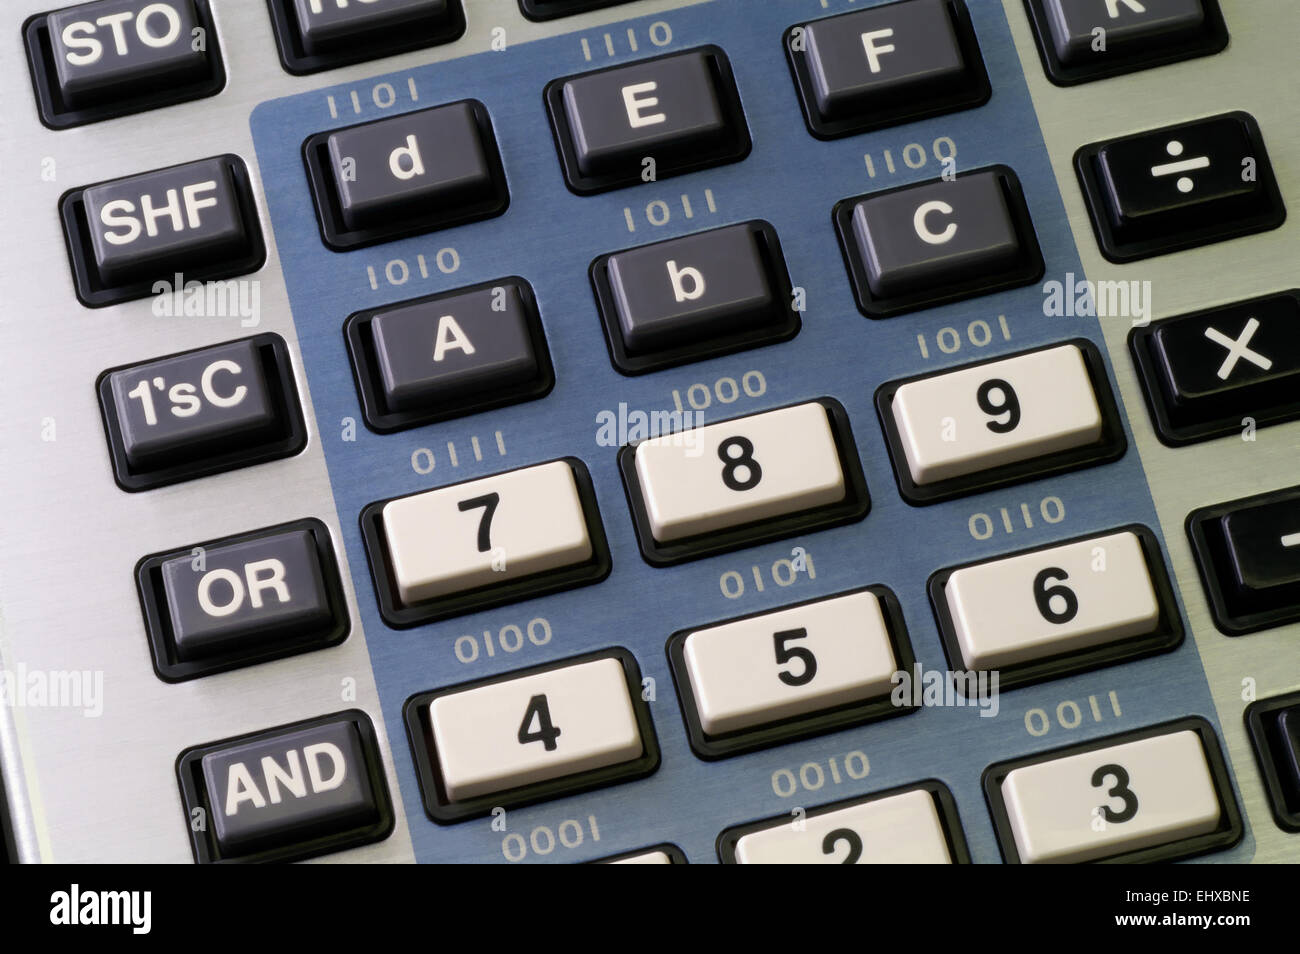 Programmer's calculator with hexadecimal and logic functions keys visible Stock Photo